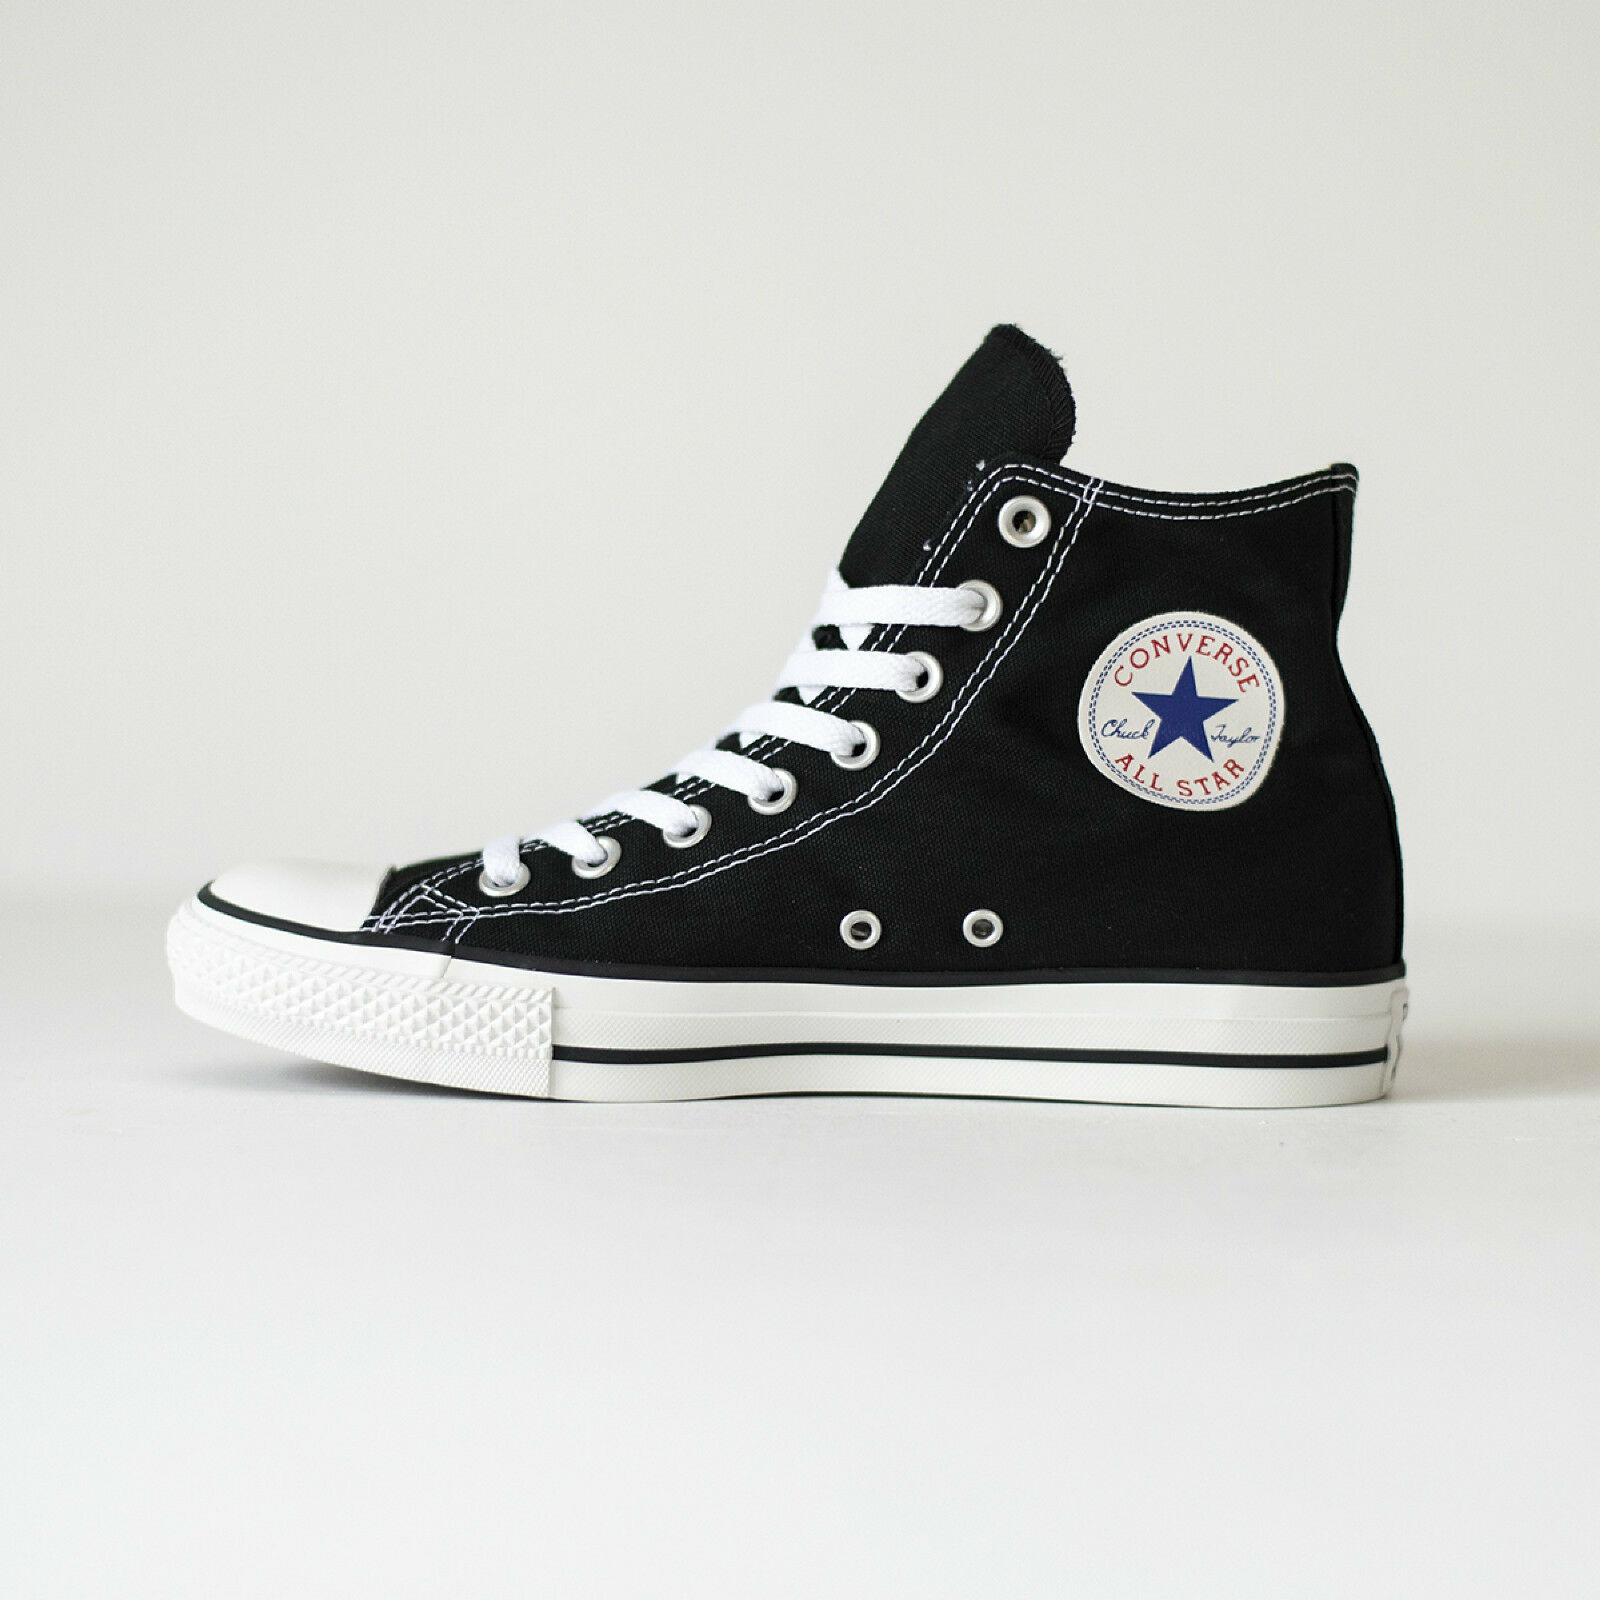 Converse All Star Hi Top Black White Canvas Chuck Taylor M9160 100% Original